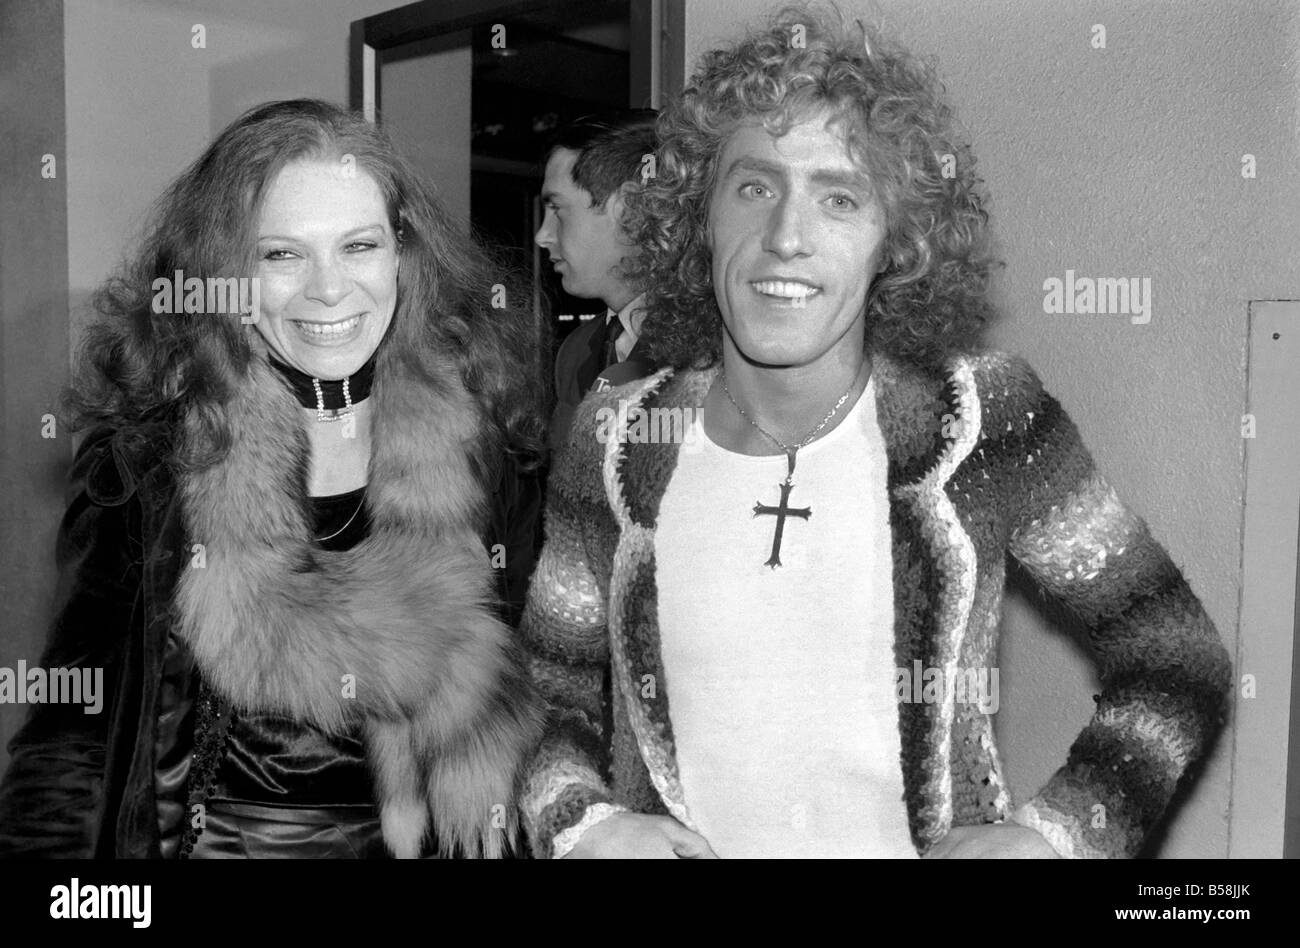 d25b9249b Film premiere of Tommy. Leicester Sq. Theatre. Roger Daltrey who attended  the premiere of the Ken Russell film  Tommy  at the Le